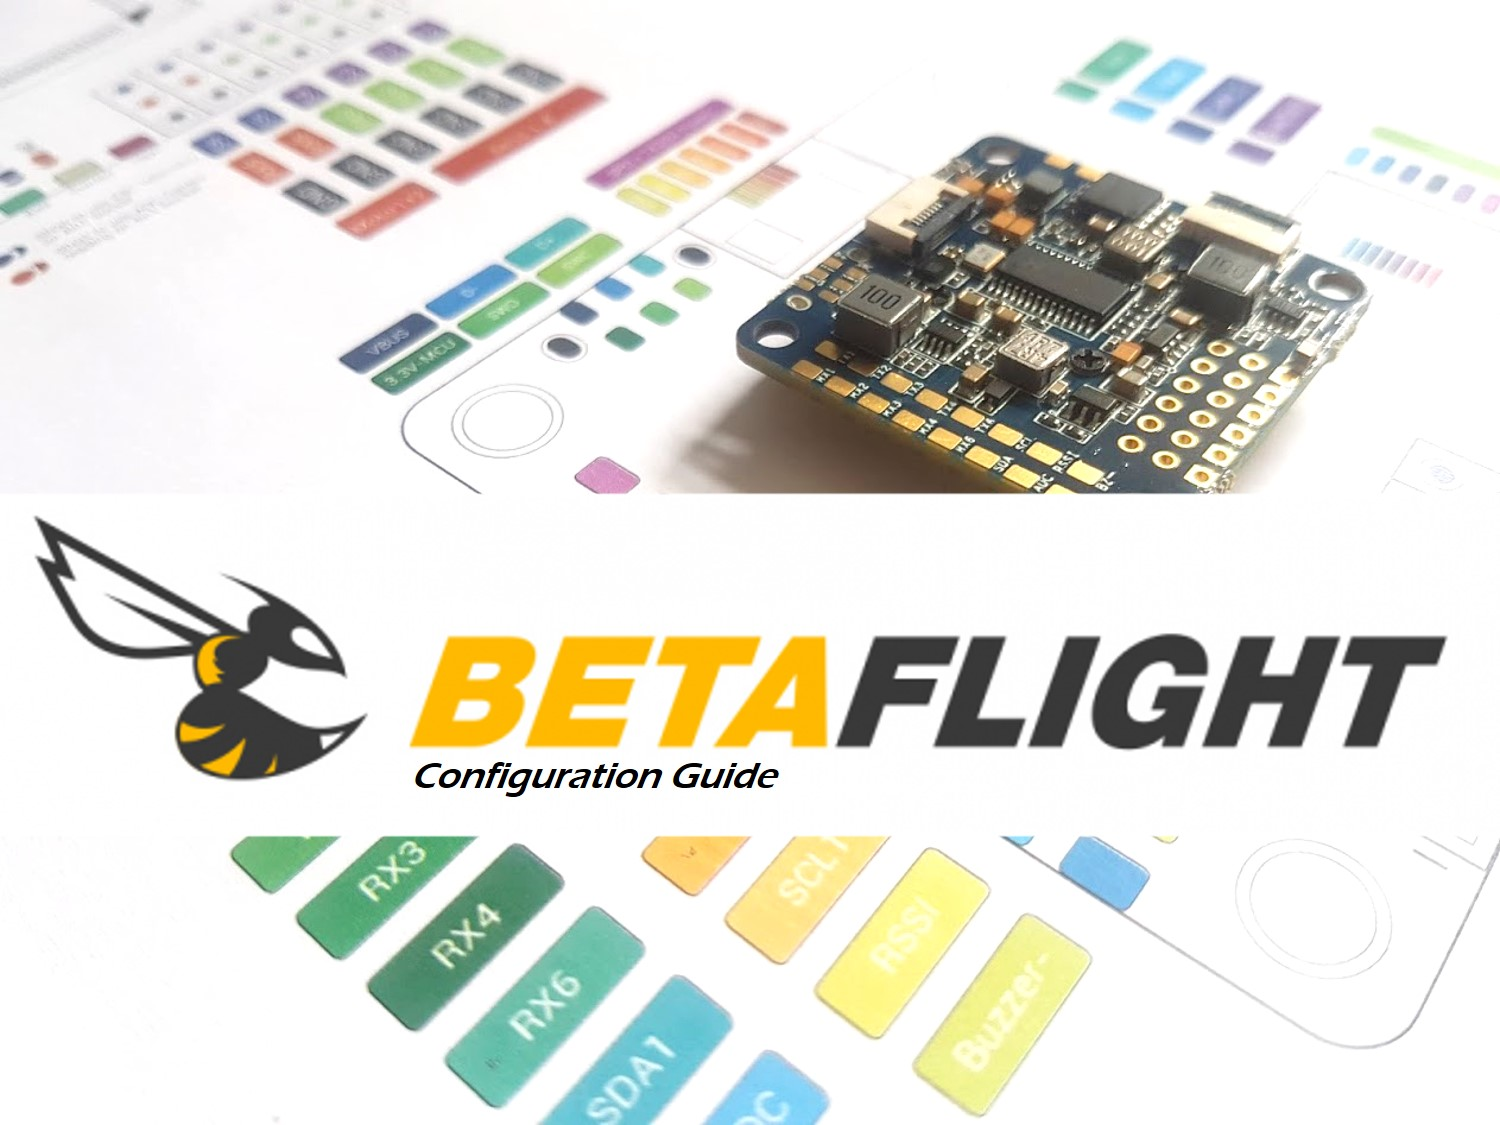 How To Setup Any Betaflight Flight Controller Dronetrest Blog Of Beginners Guide Connecting Your Rc Plane Electronic Parts